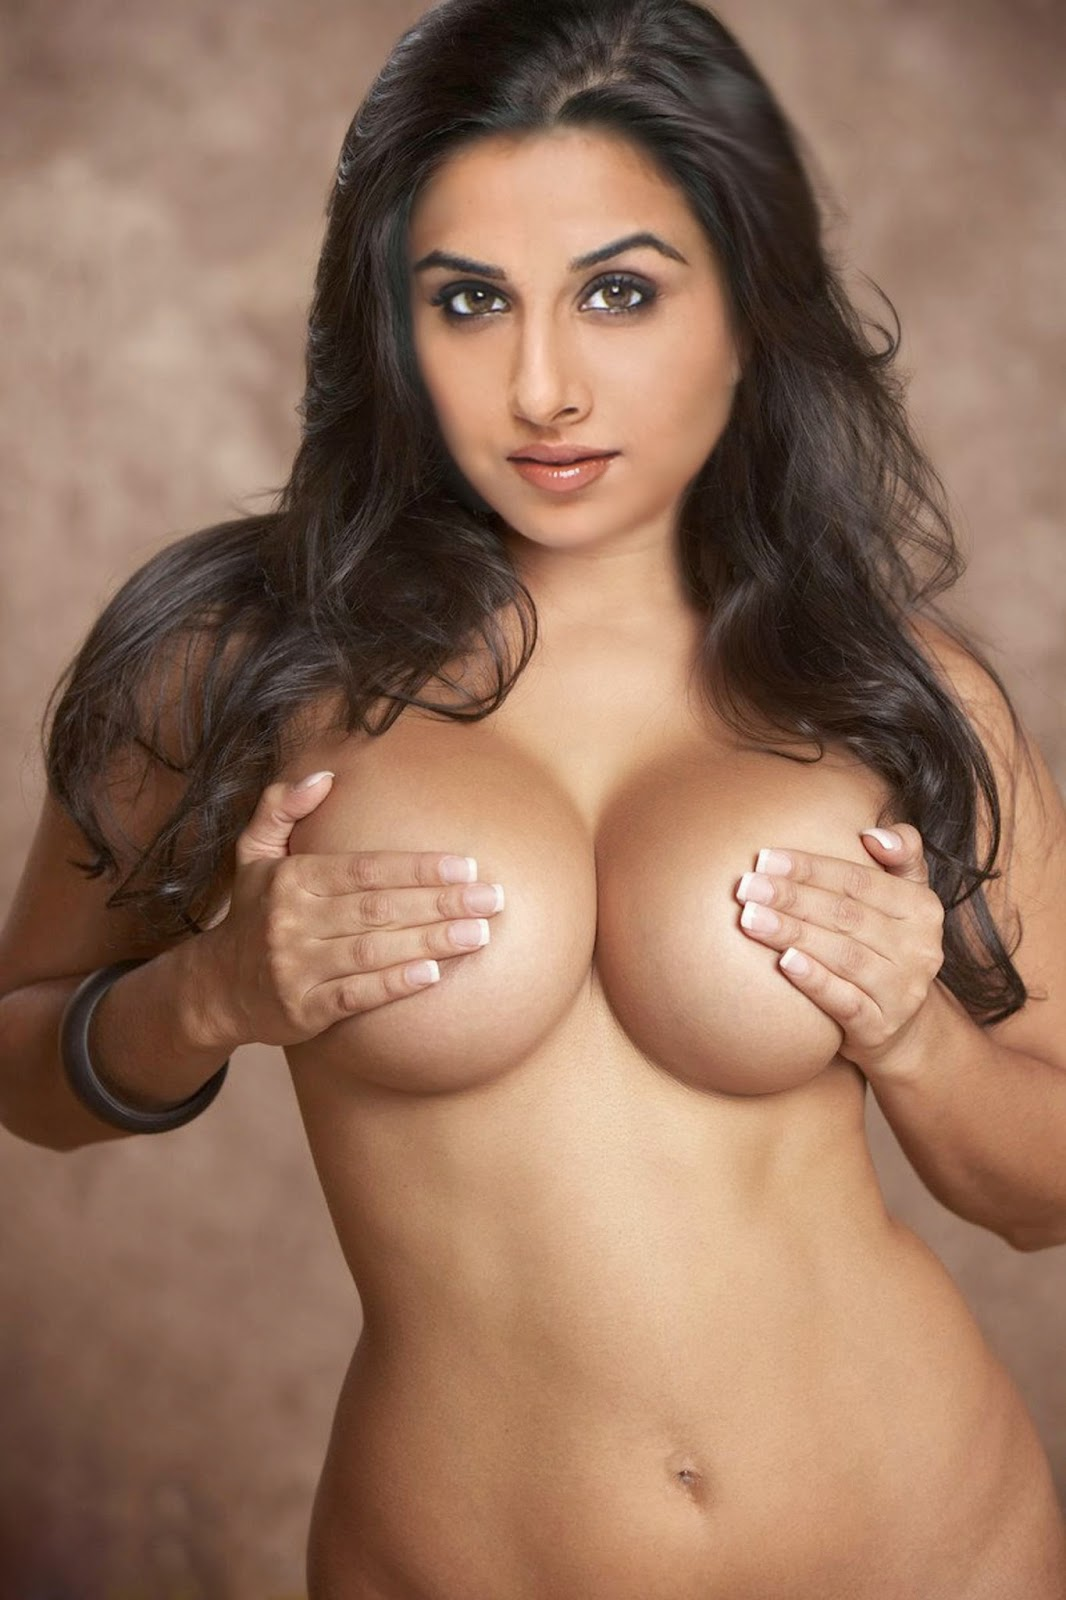 Nude Indian Booty Actress Pics